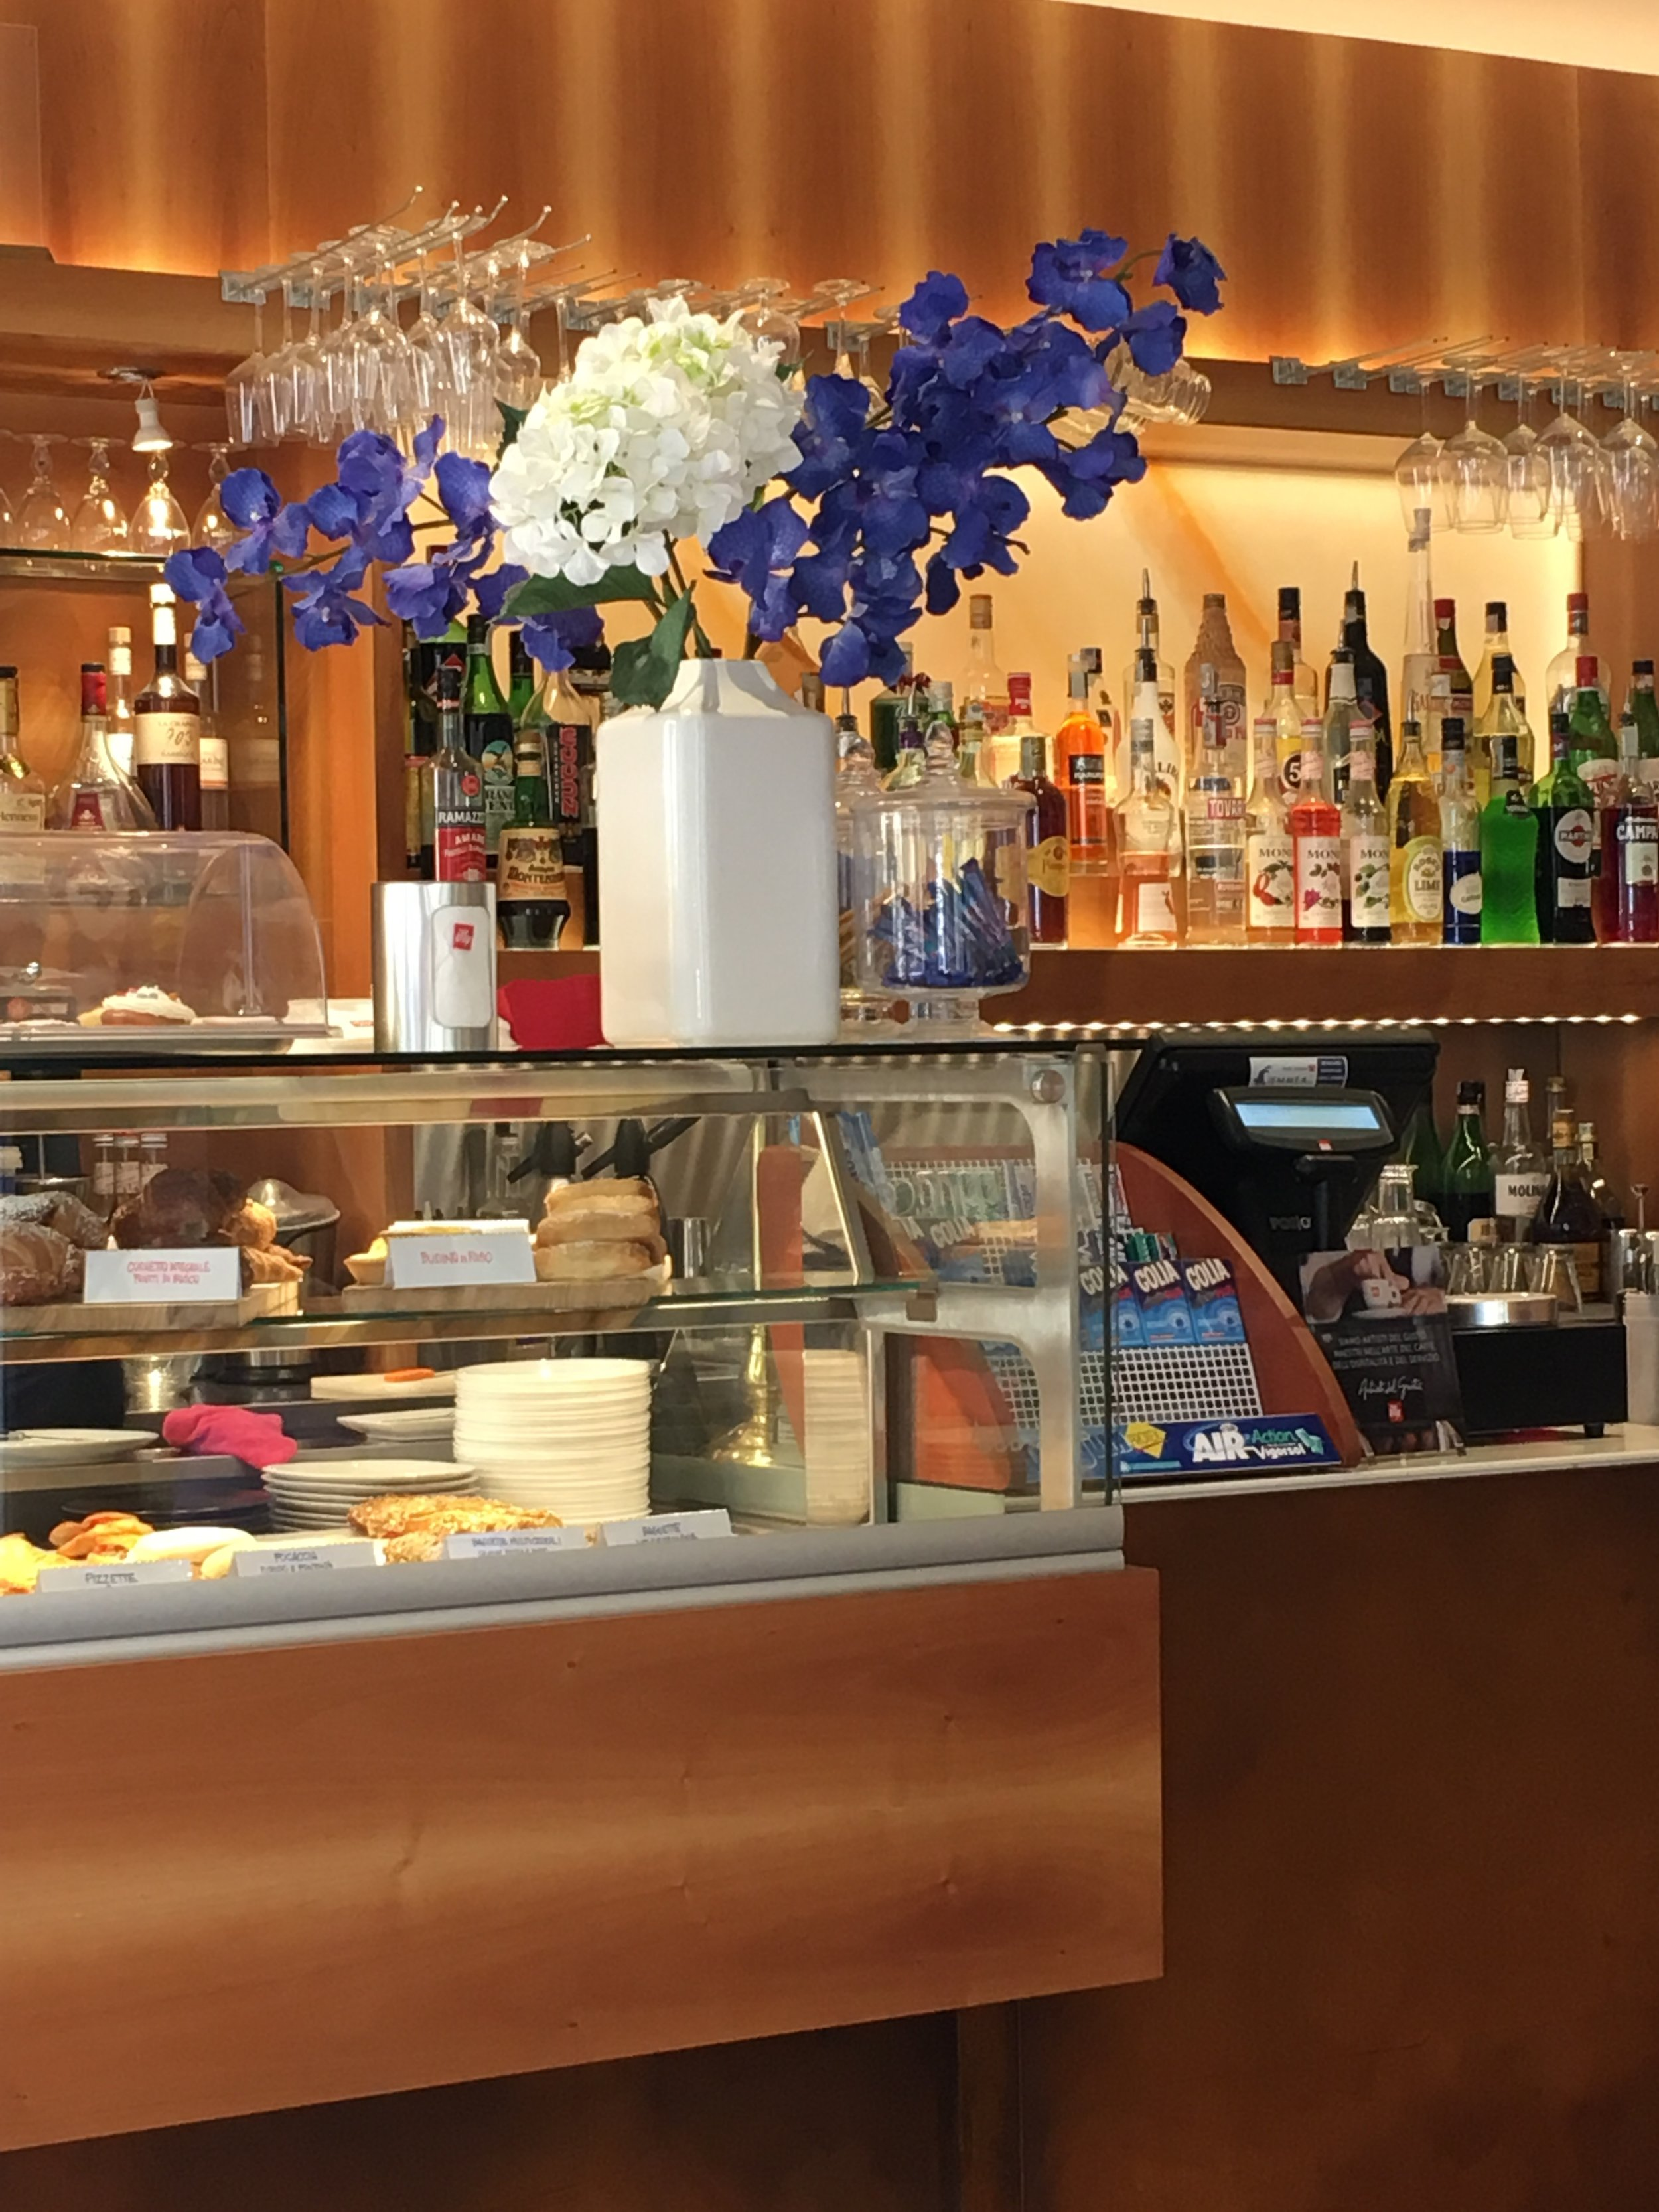 The pretty counter is a perfect place to sip your espresso Italian style, standing at the bar.